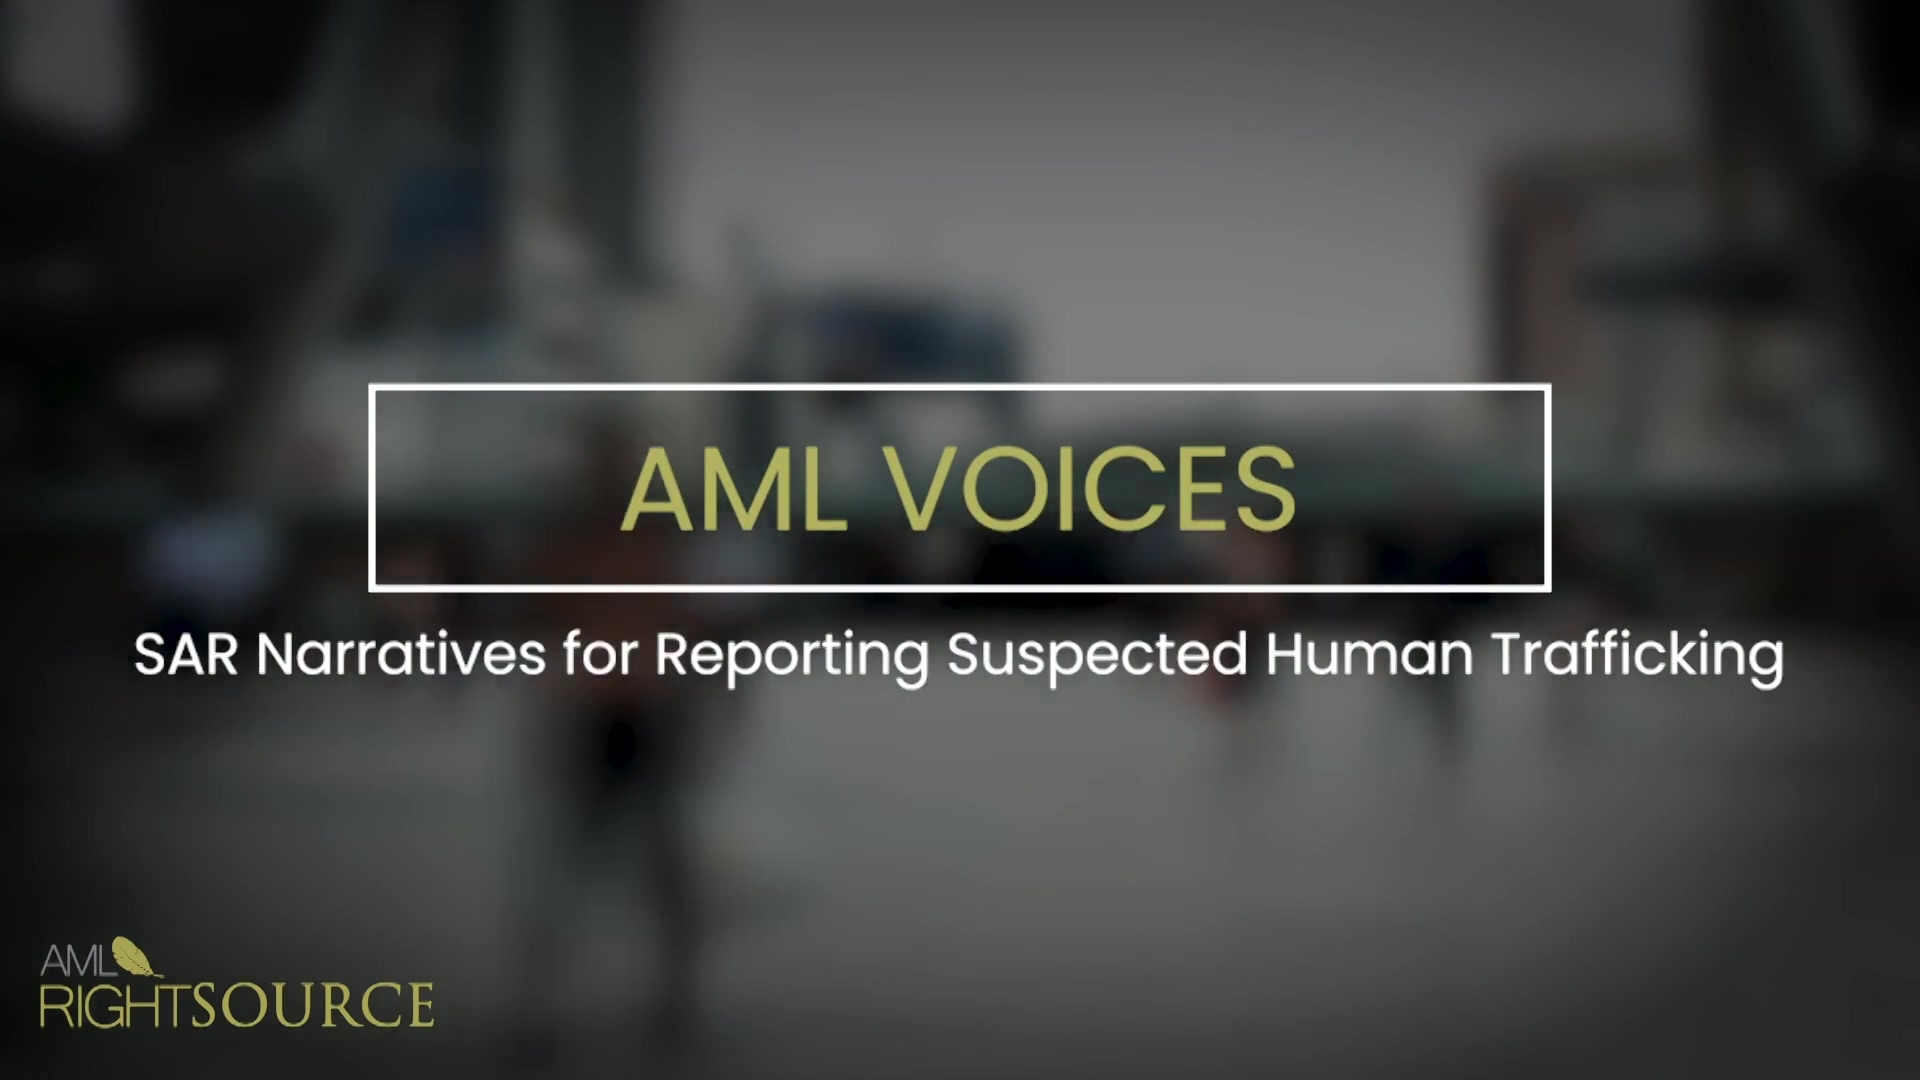 SAR Narratives for Reporting Suspected Human Trafficking